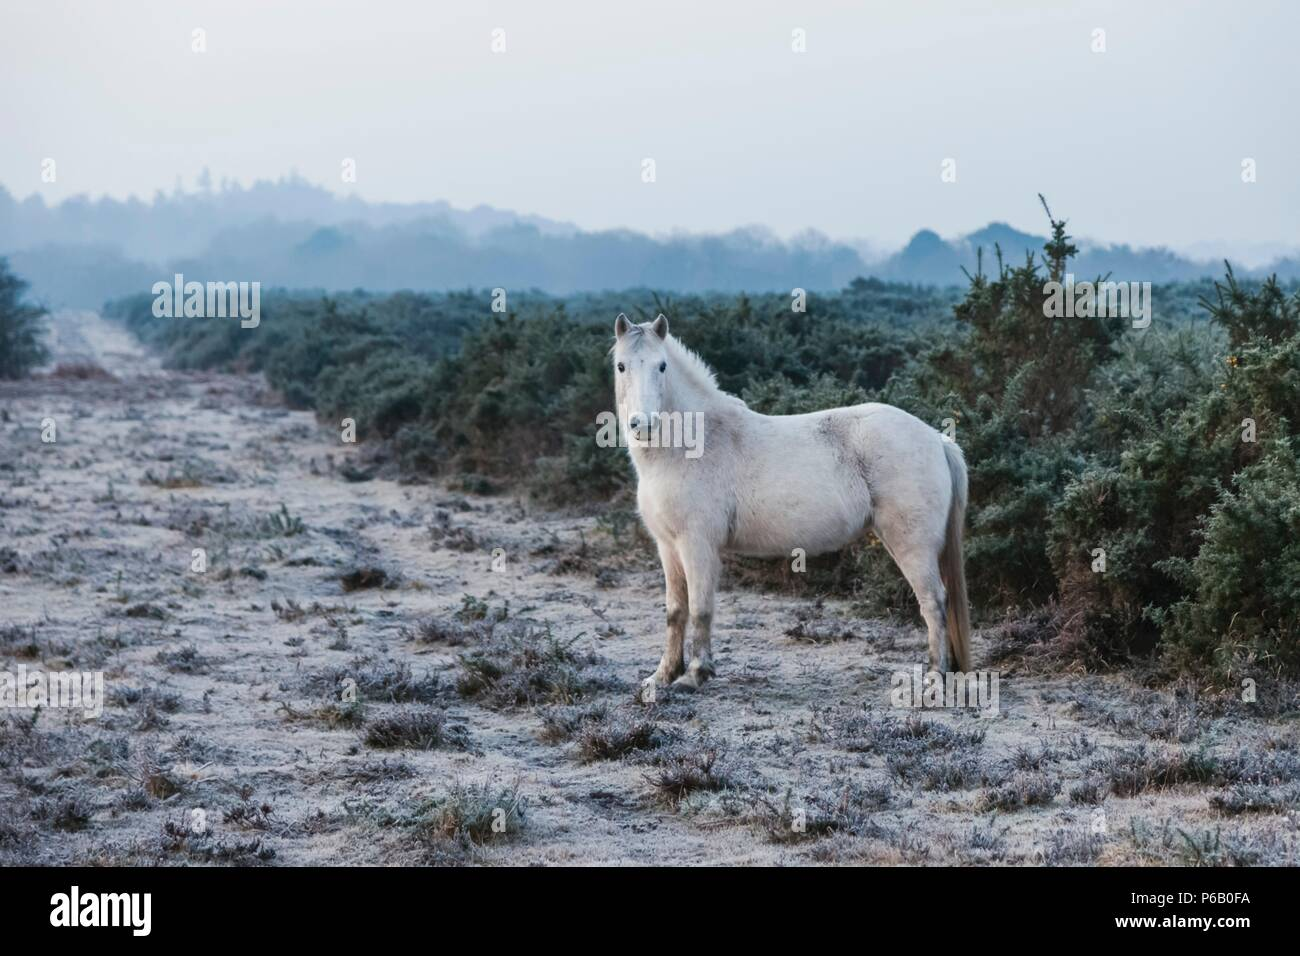 England, Hampshire, The New Forest, Pony - Stock Image